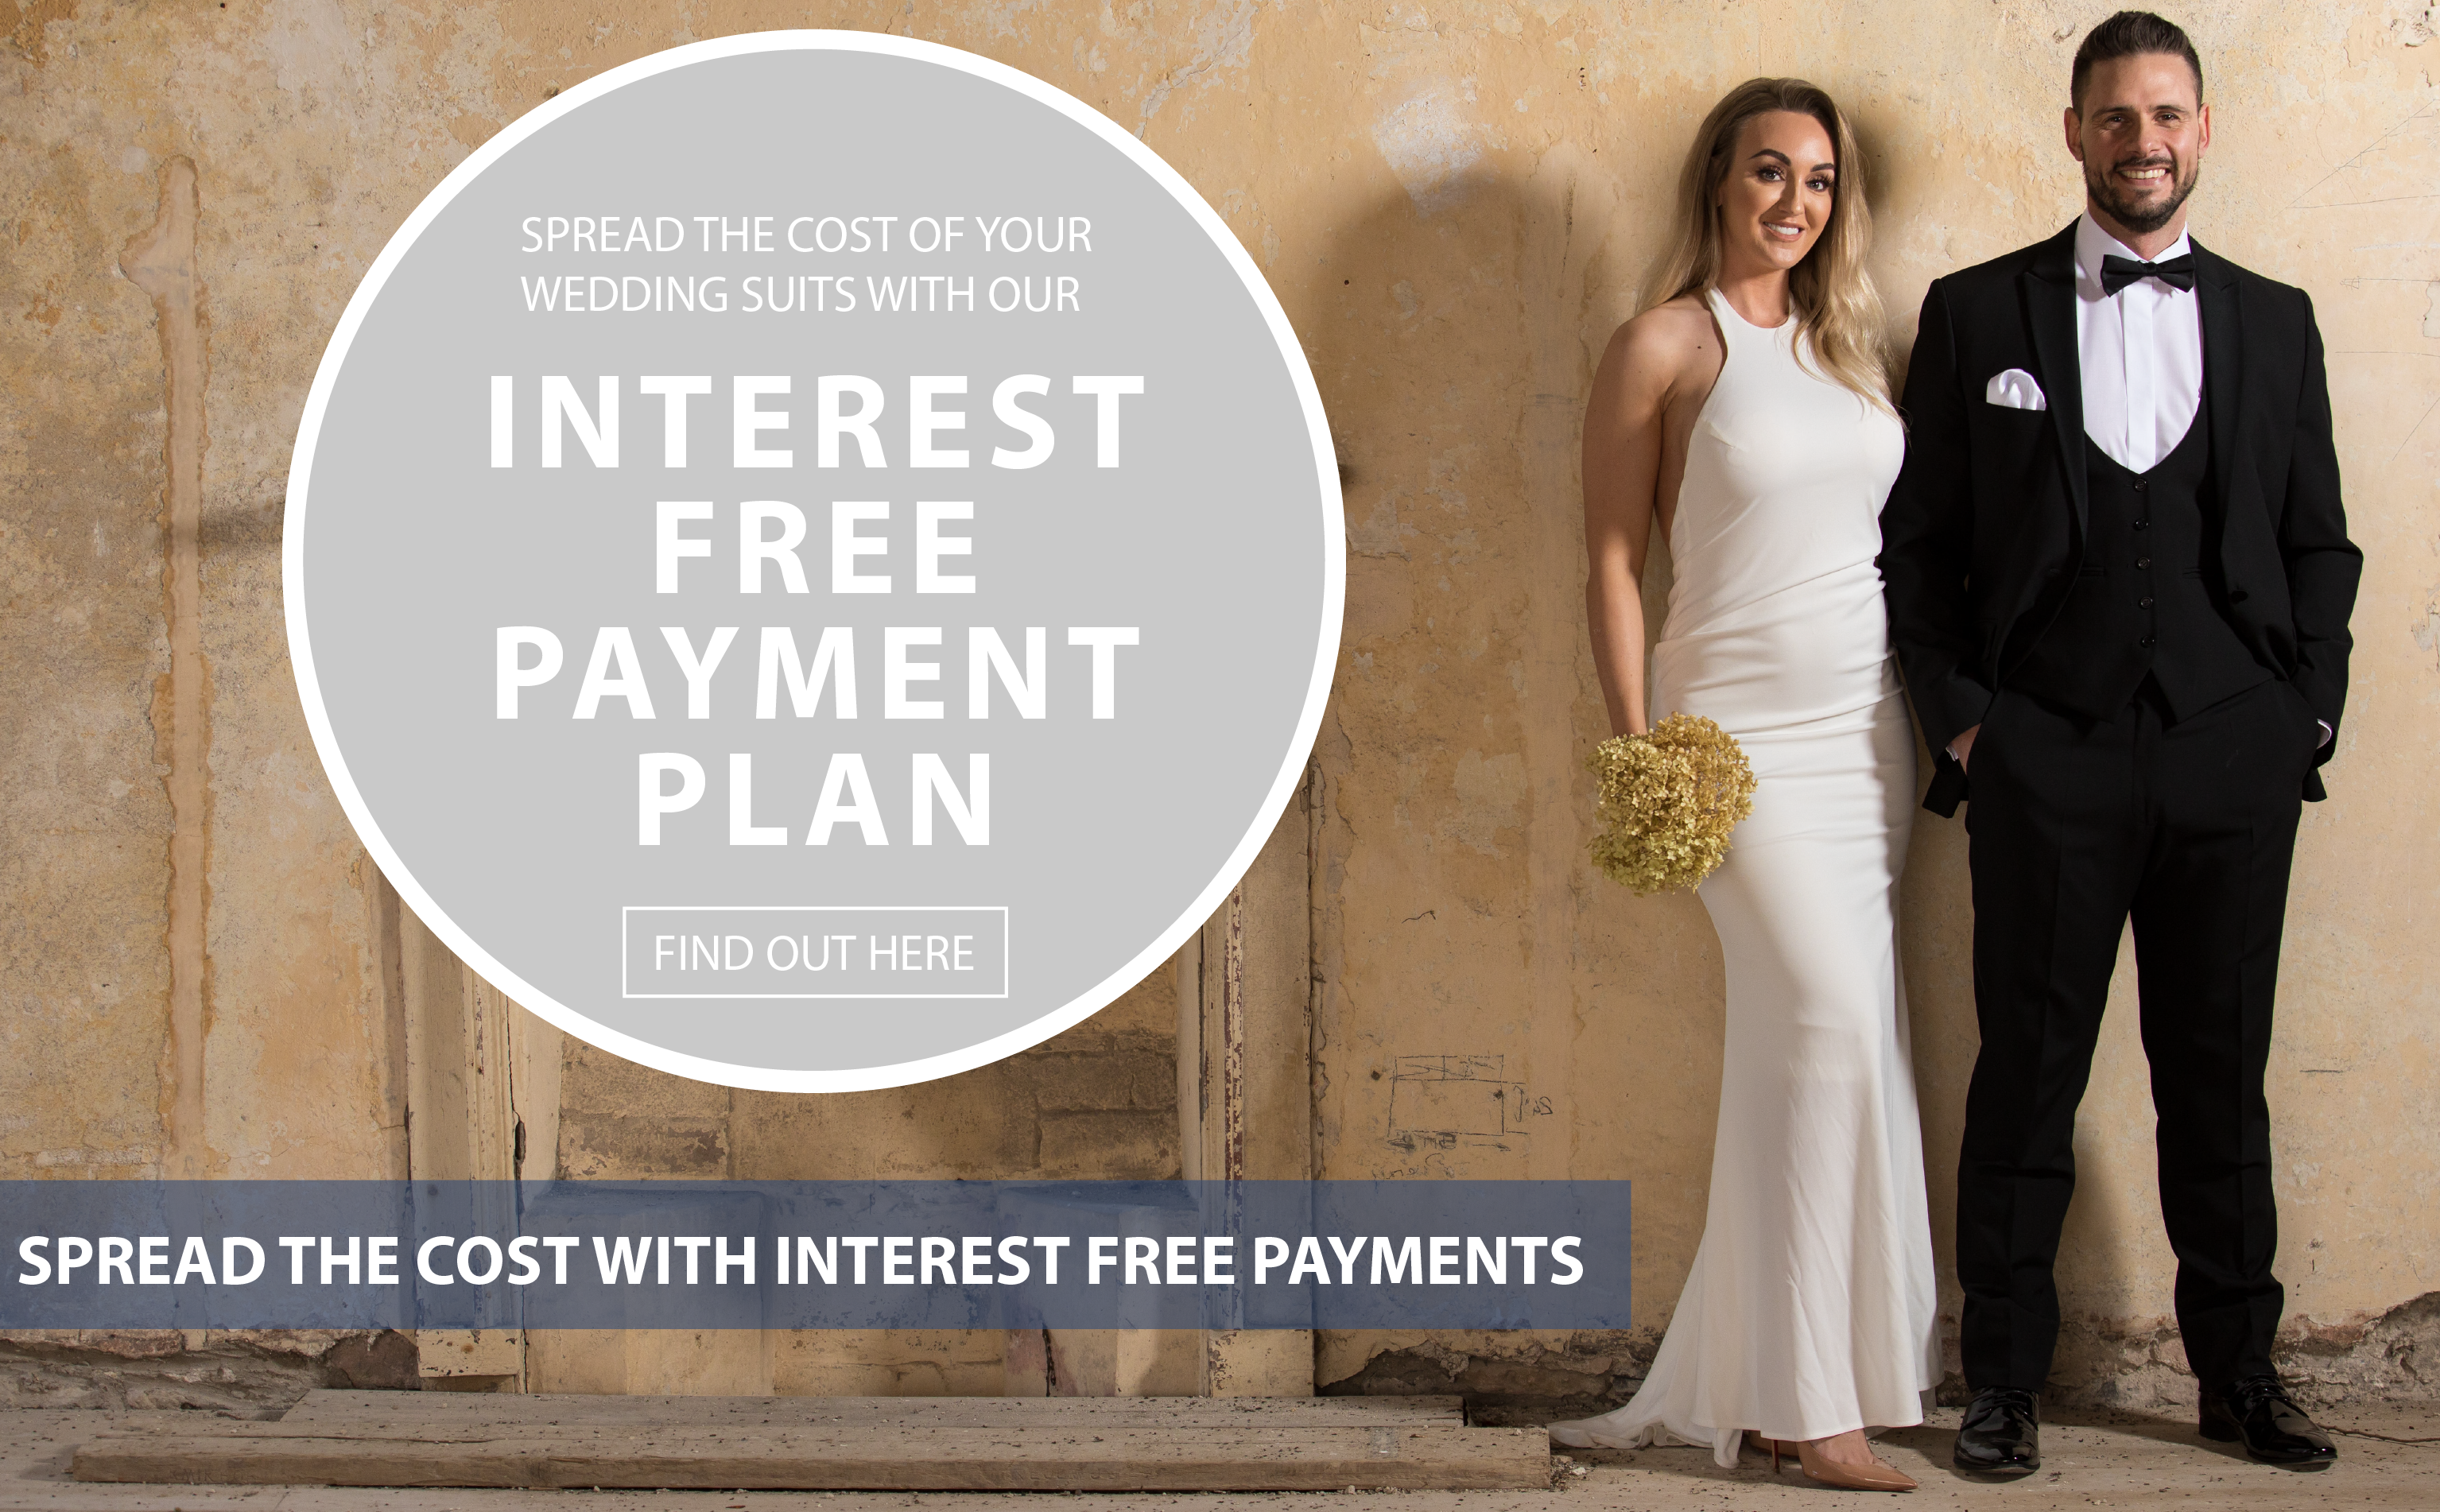 INTEREST FREE PAYMENT PLAN AVAILABLE